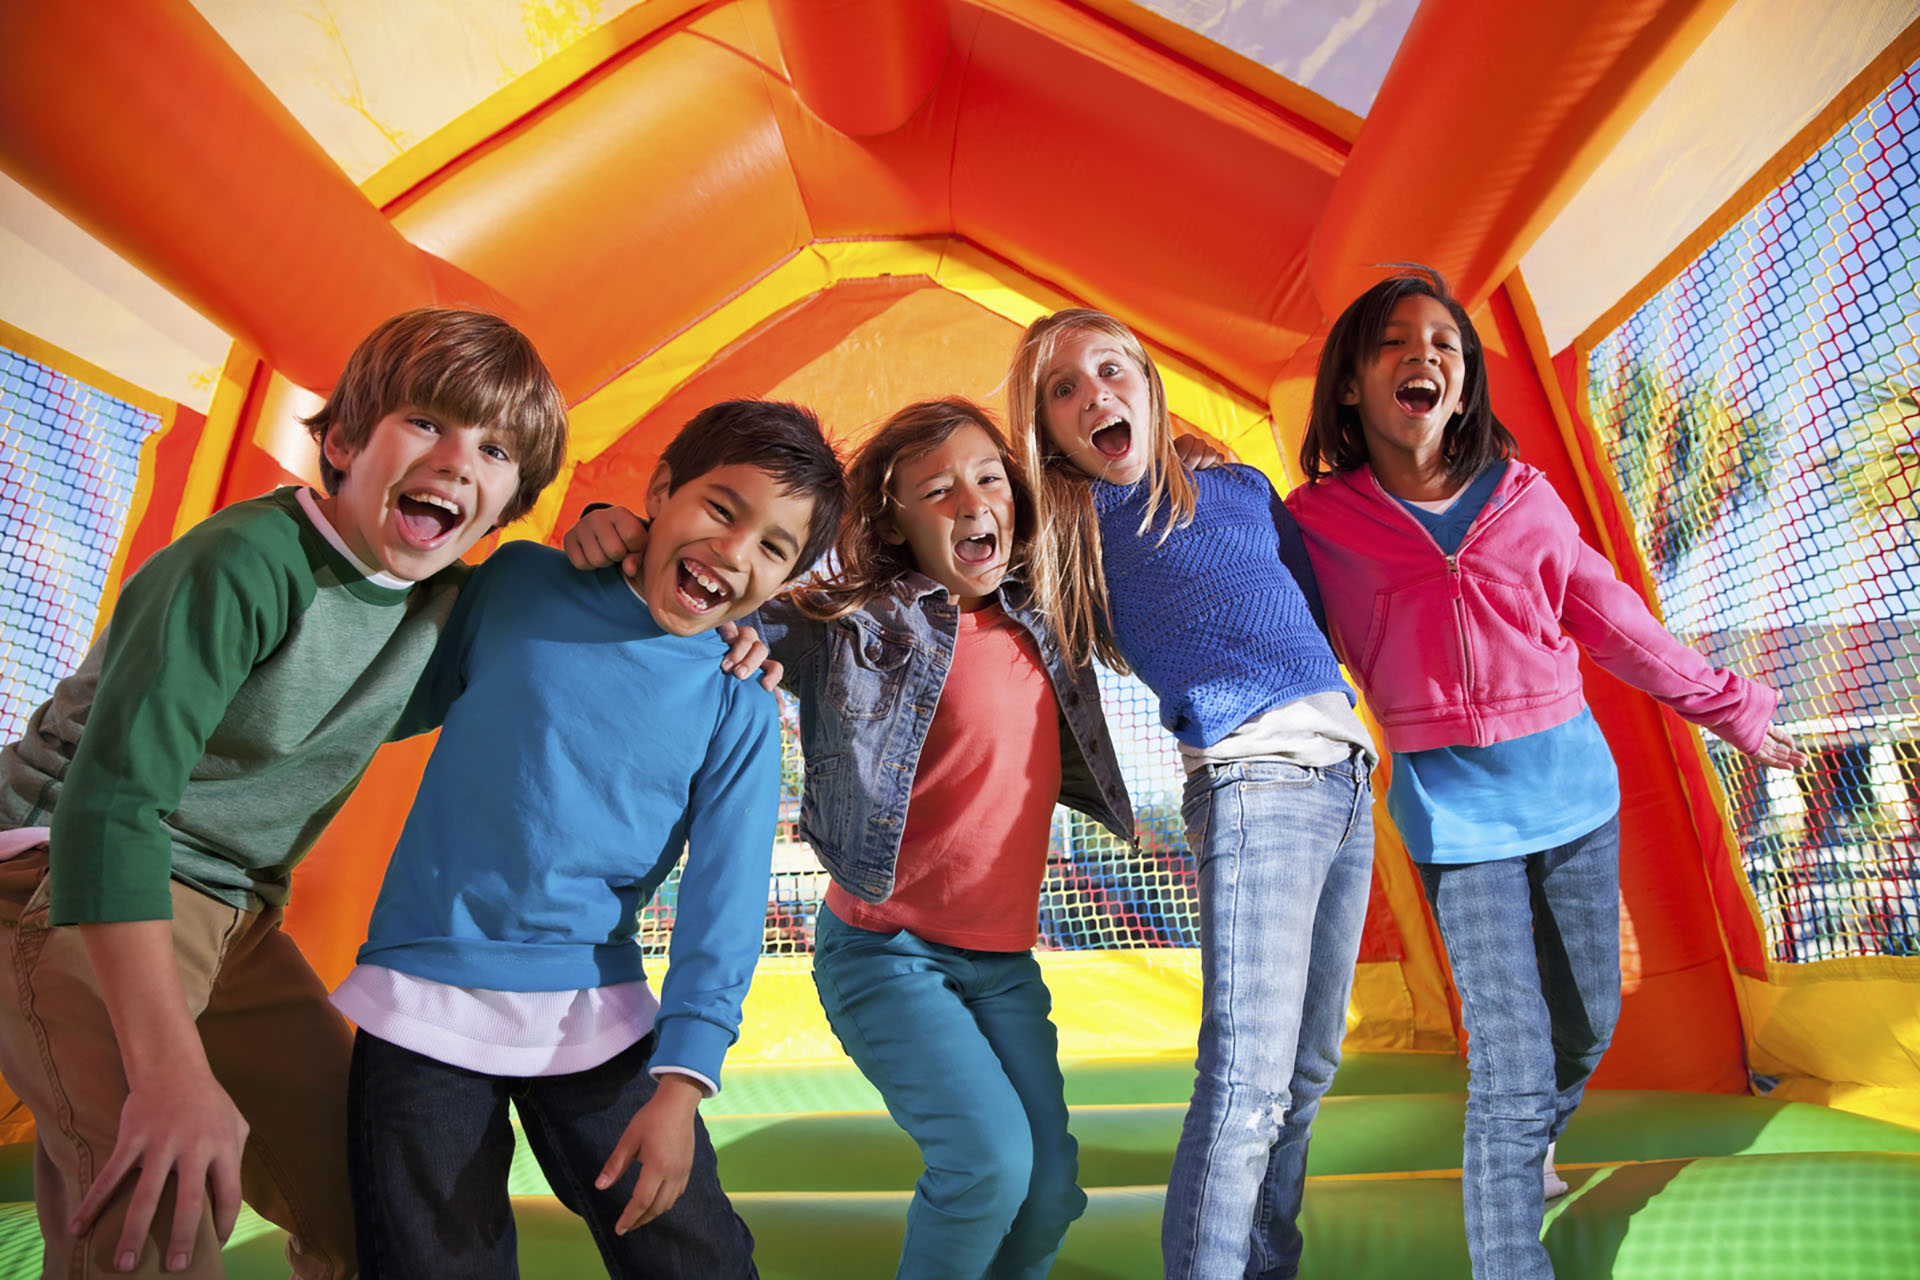 group of kids playing insde bouncy castle enclosure